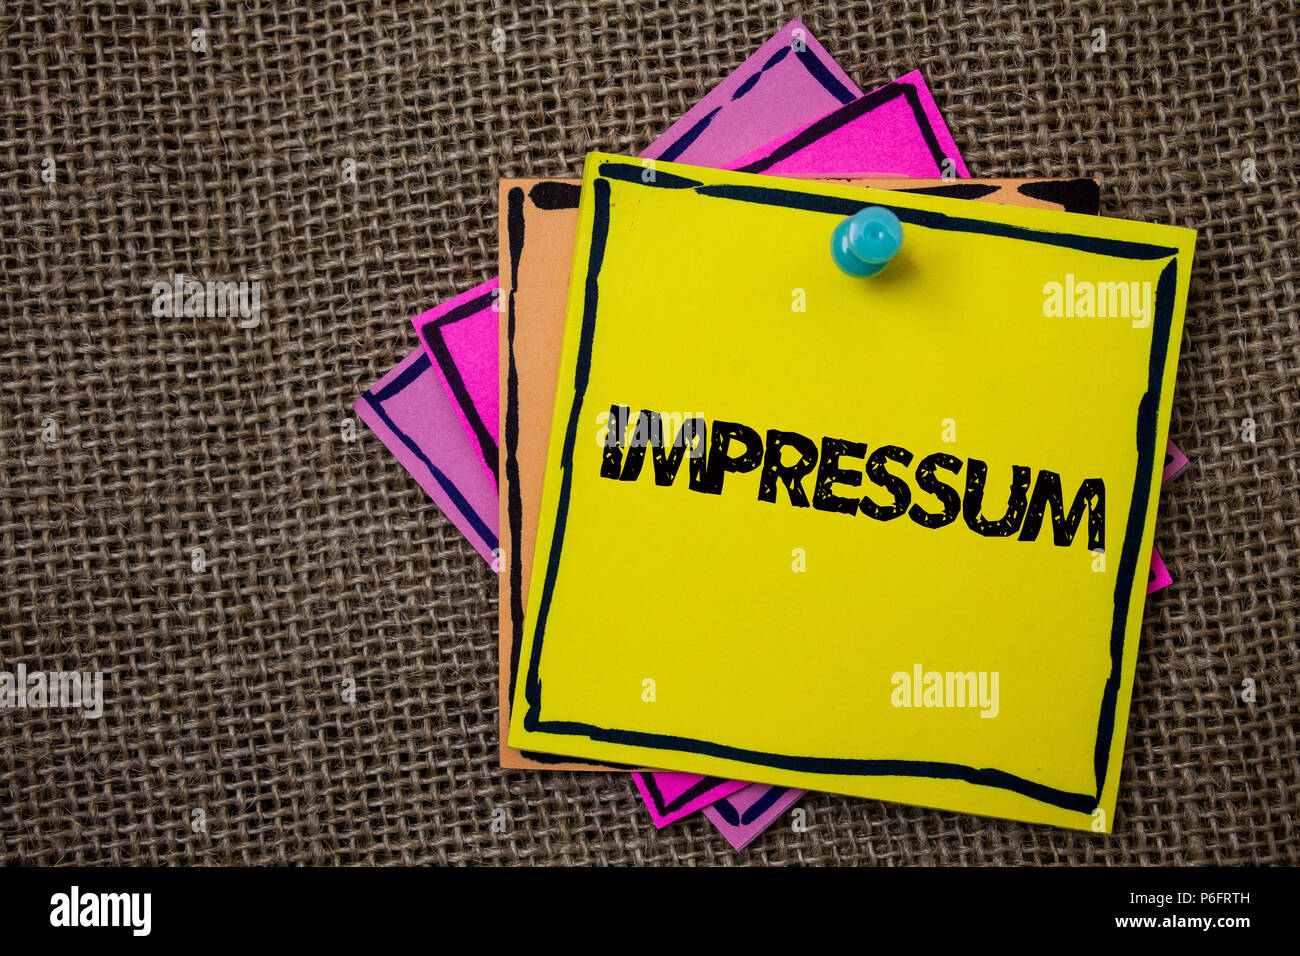 Word writing text Impressum. Business concept for Impressed Engraved Imprint German statement ownership authorship Papers Ideas messages important to  - Stock Image